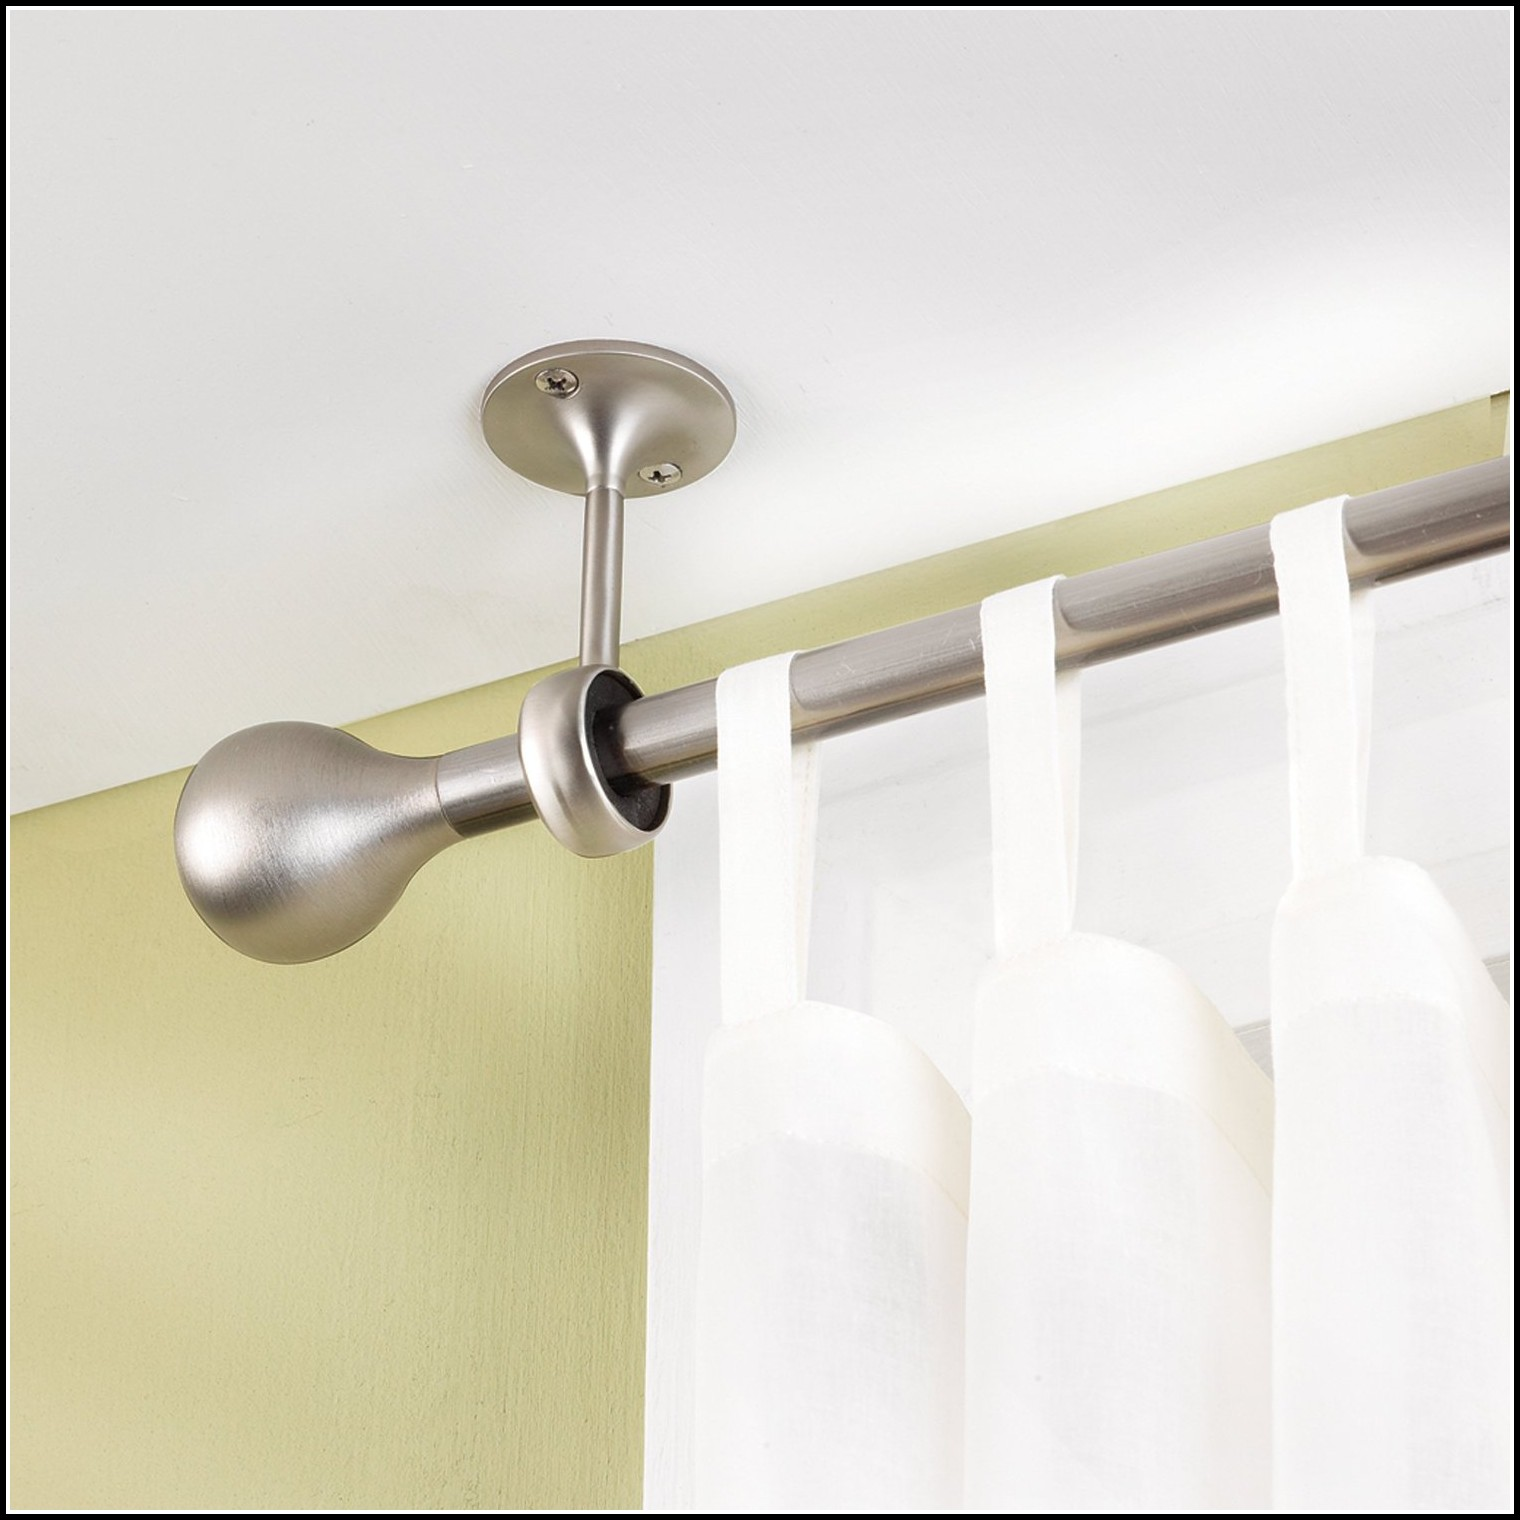 Ceiling Mount Curtain Rod